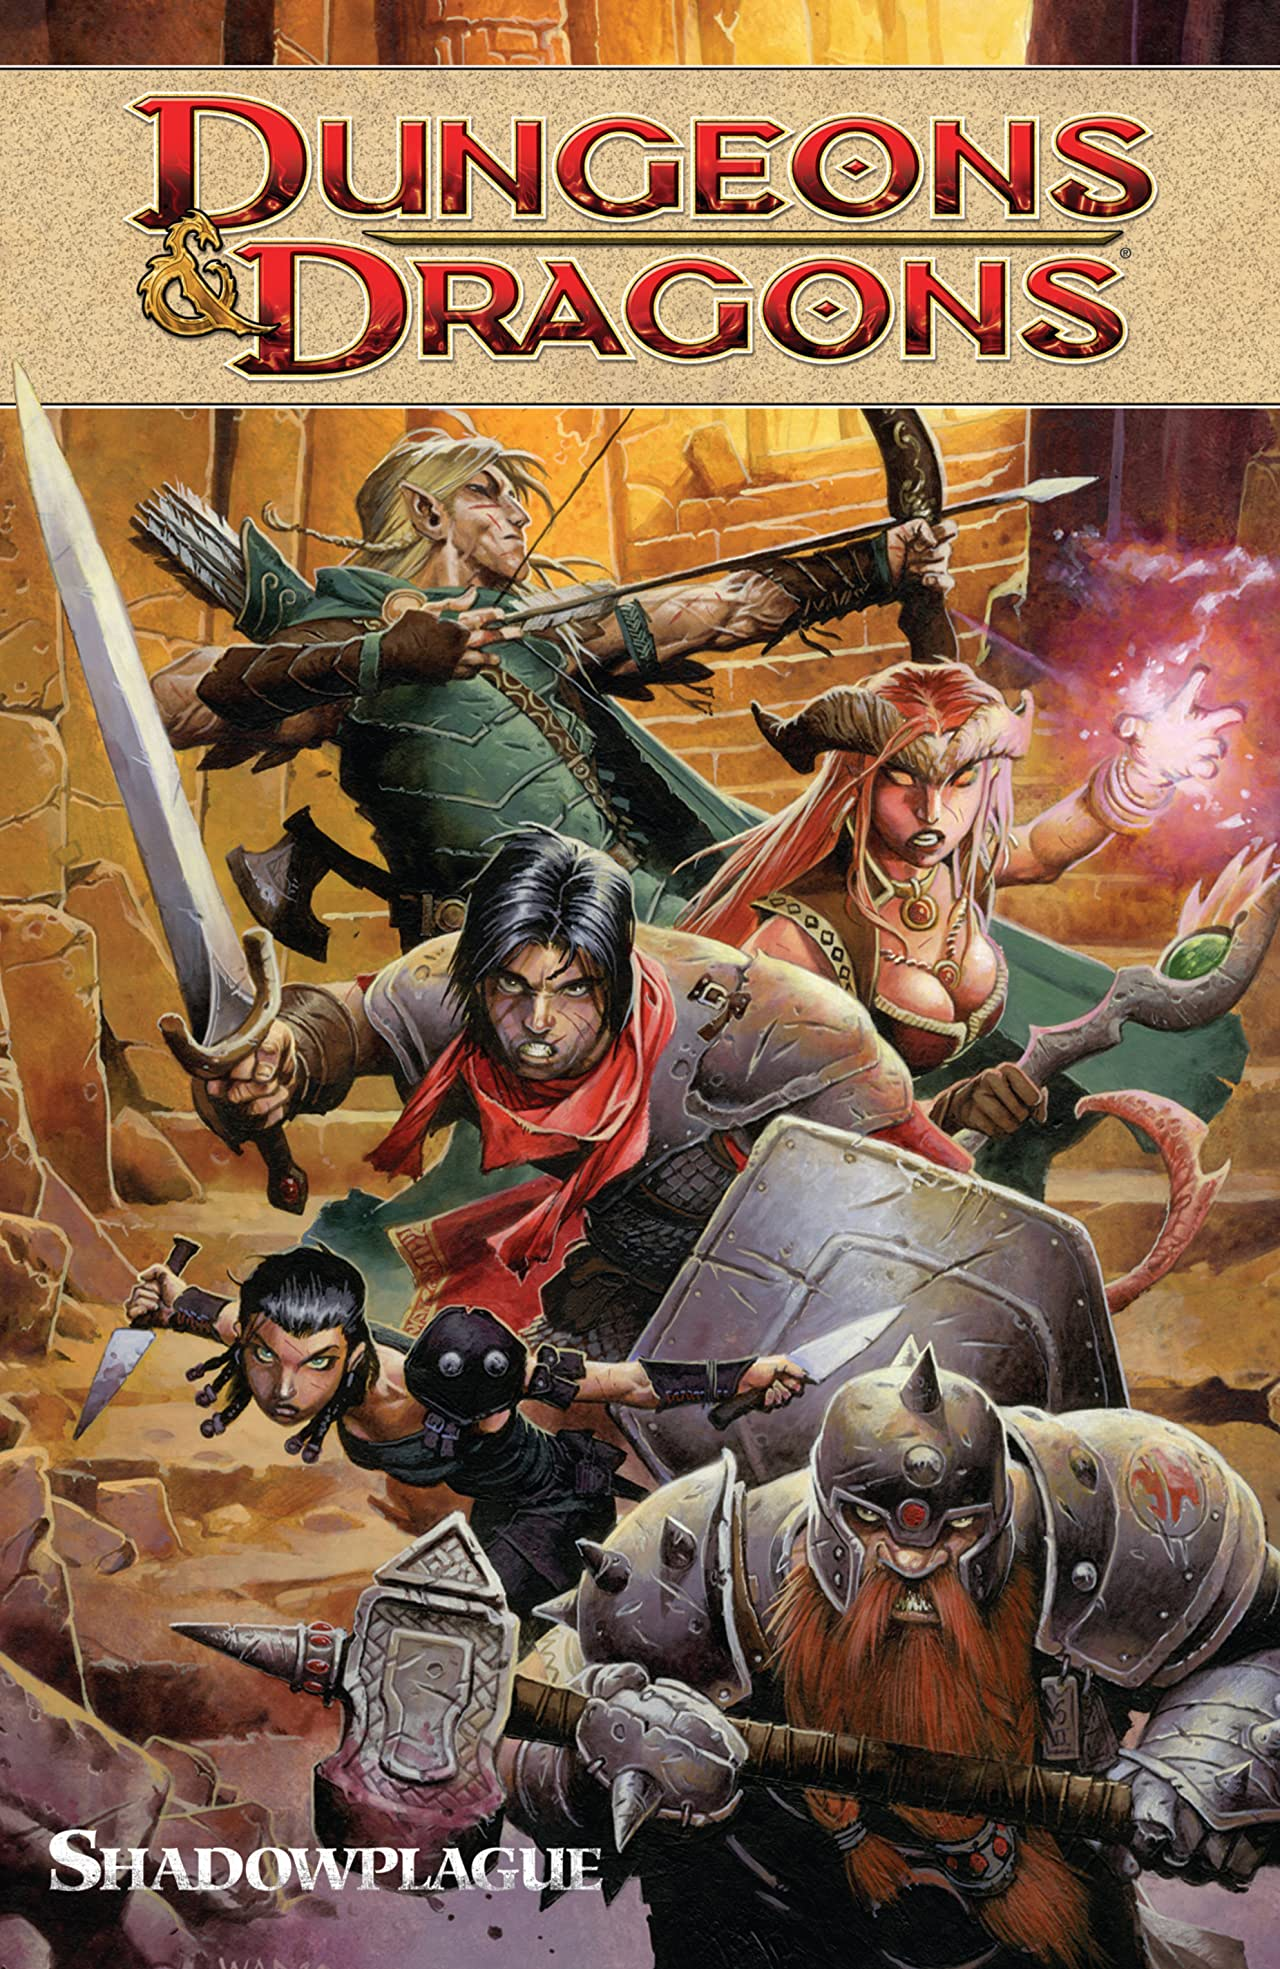 Dungeons & Dragons Tome 1: Shadowplague